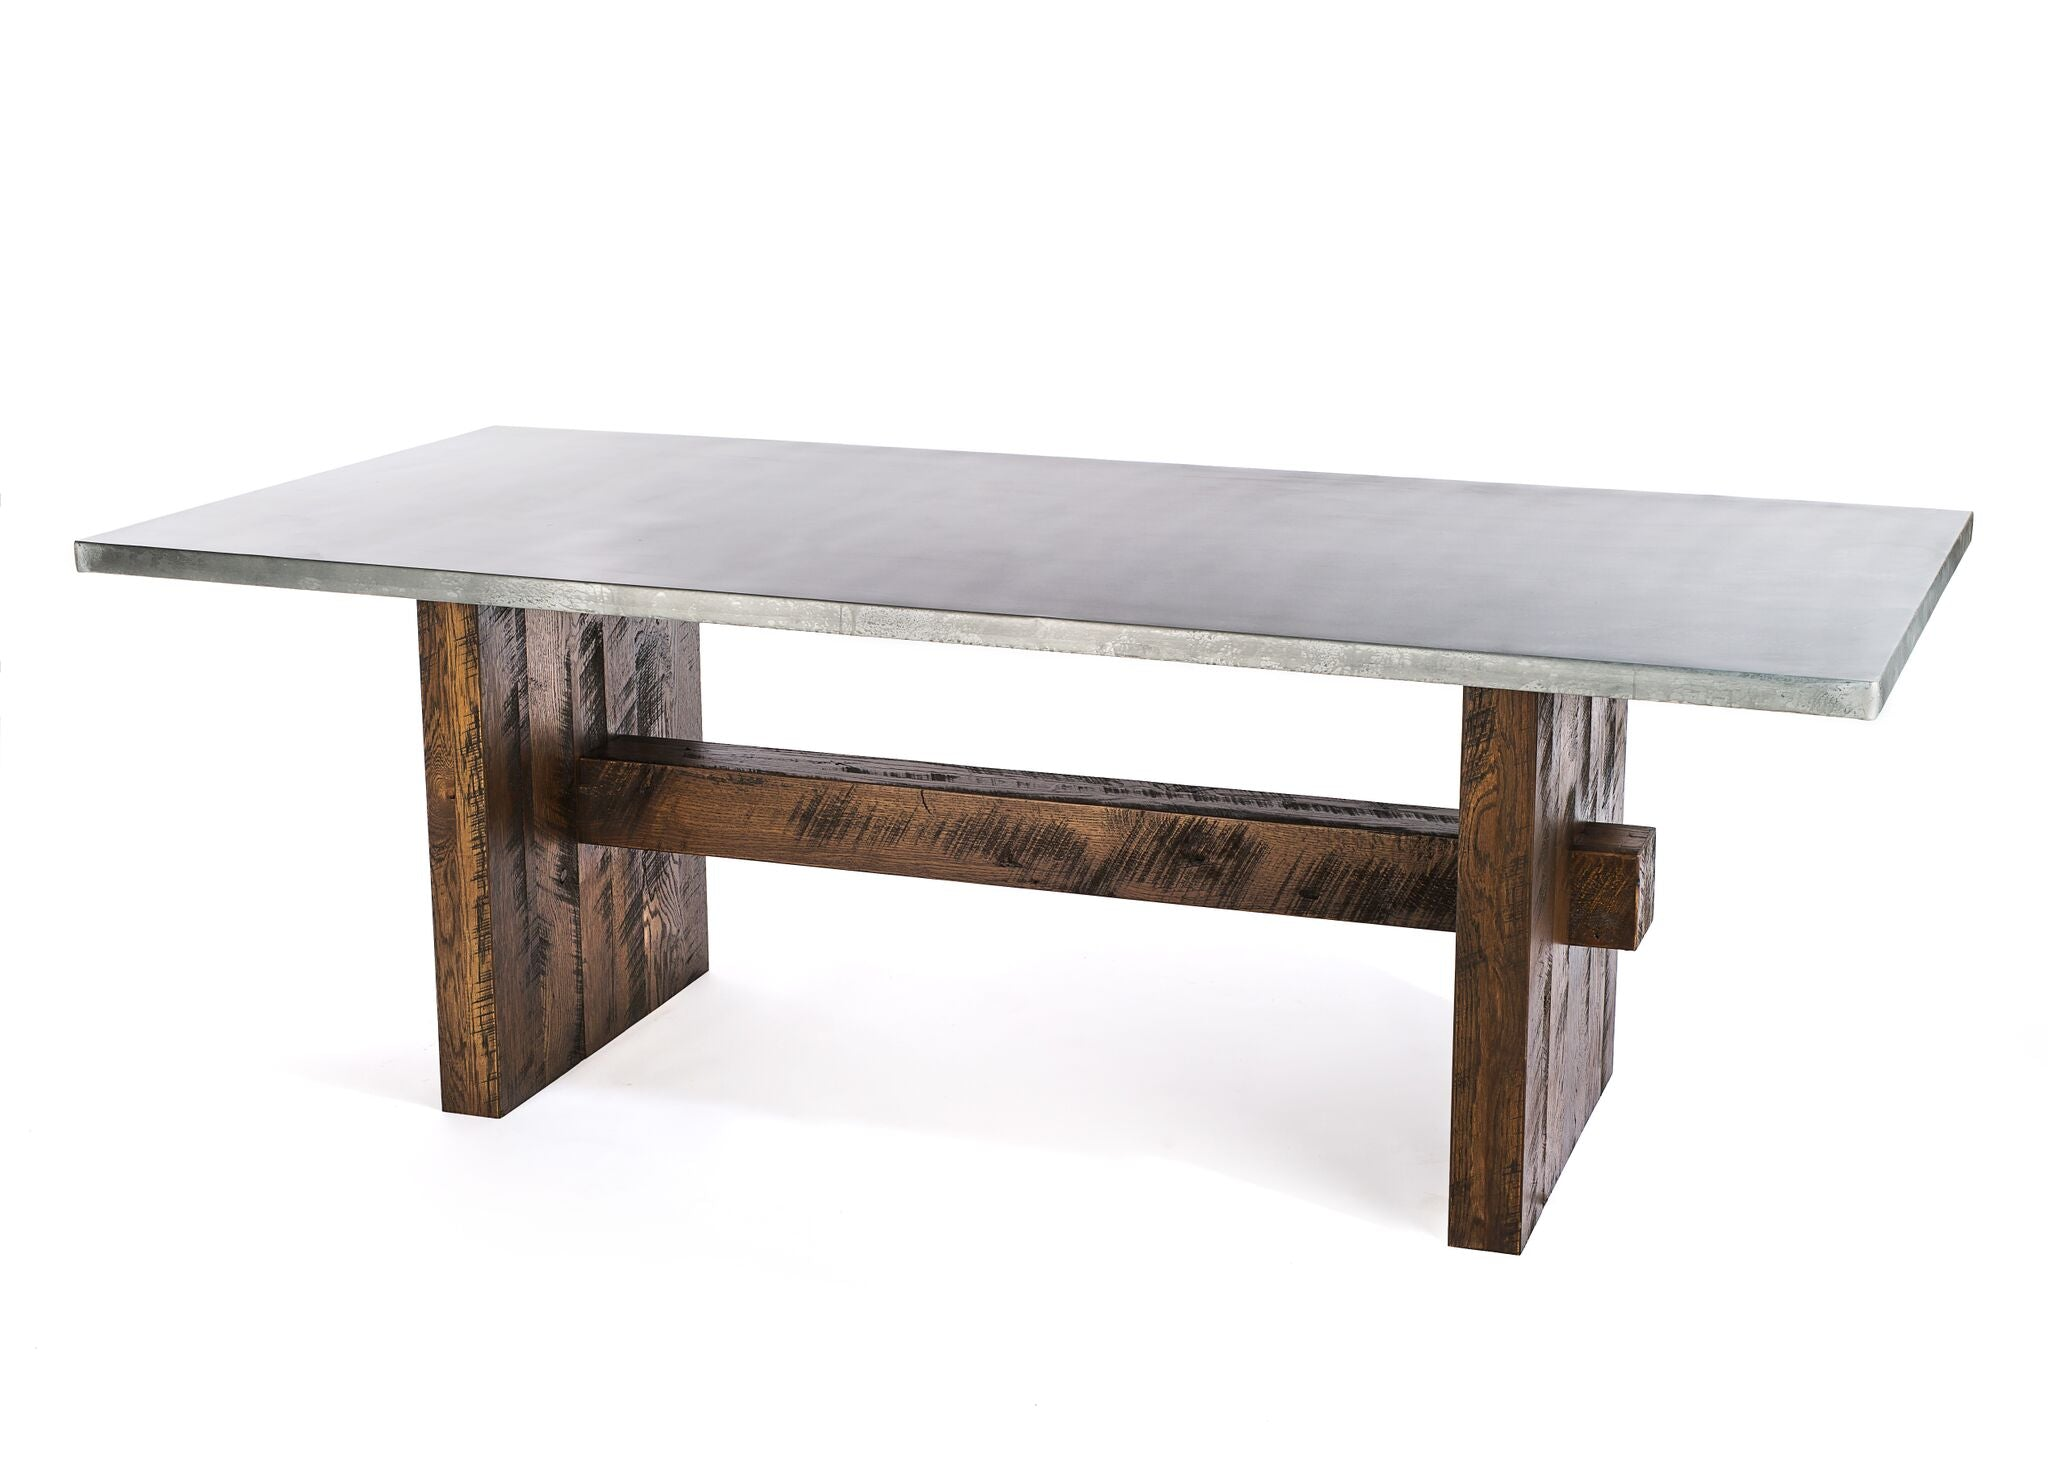 "Zinc Rectangular Table | Redford Trestle Table | CLASSIC | Americana on Reclaimed Oak | 84""L 39""W 30""H 